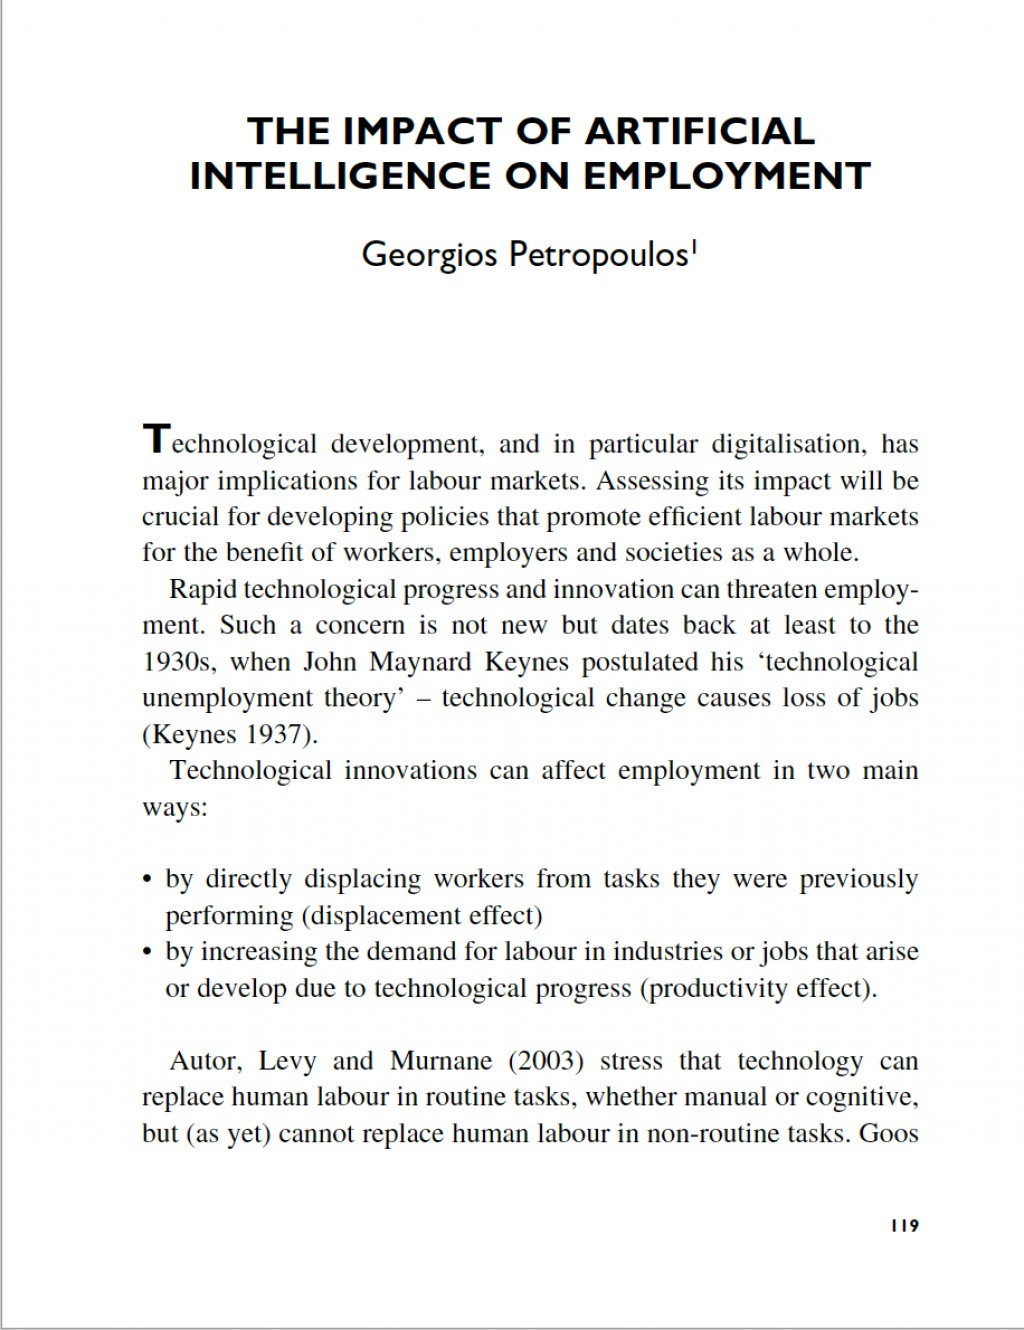 006 Screen Shot At Research Paper Artificial Intelligence Archaicawful 2018 Pdf Large